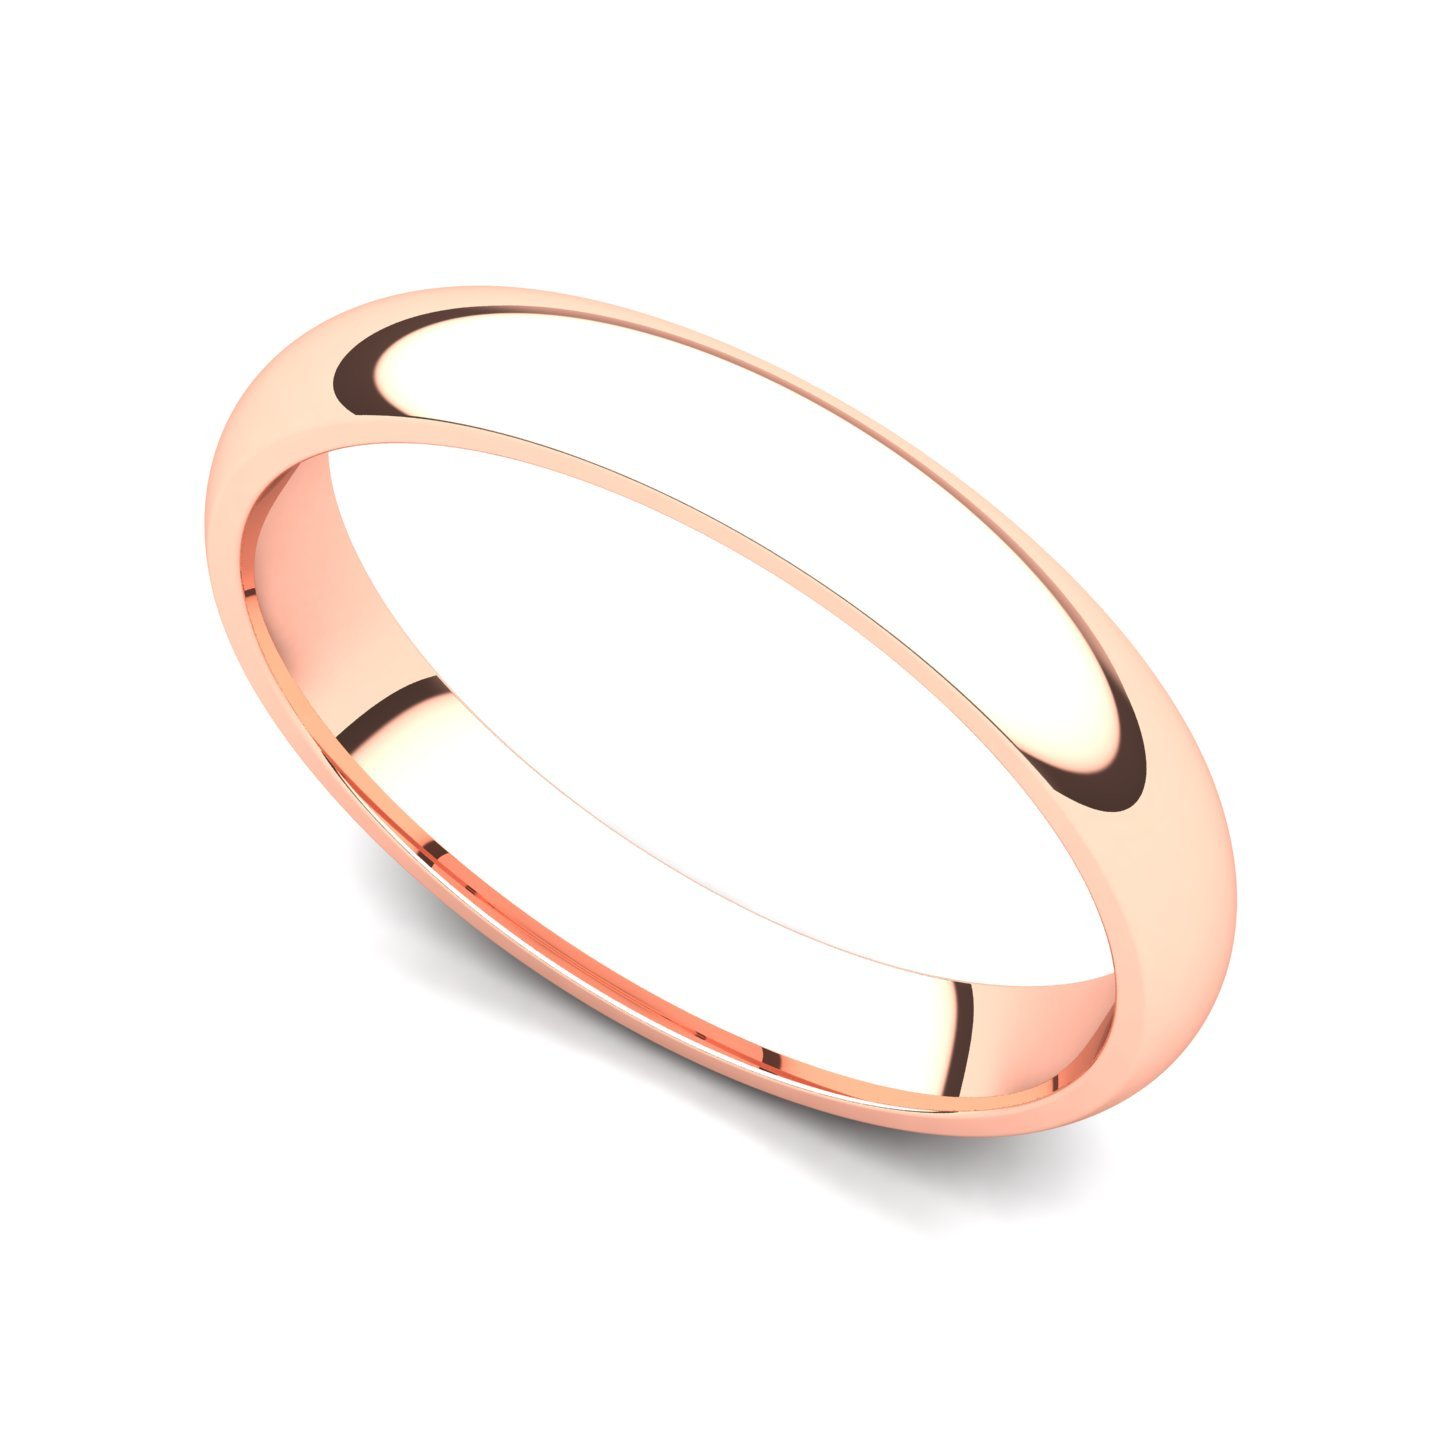 18k Rose Gold 3mm Classic Plain Comfort Fit Wedding Band Ring, 7